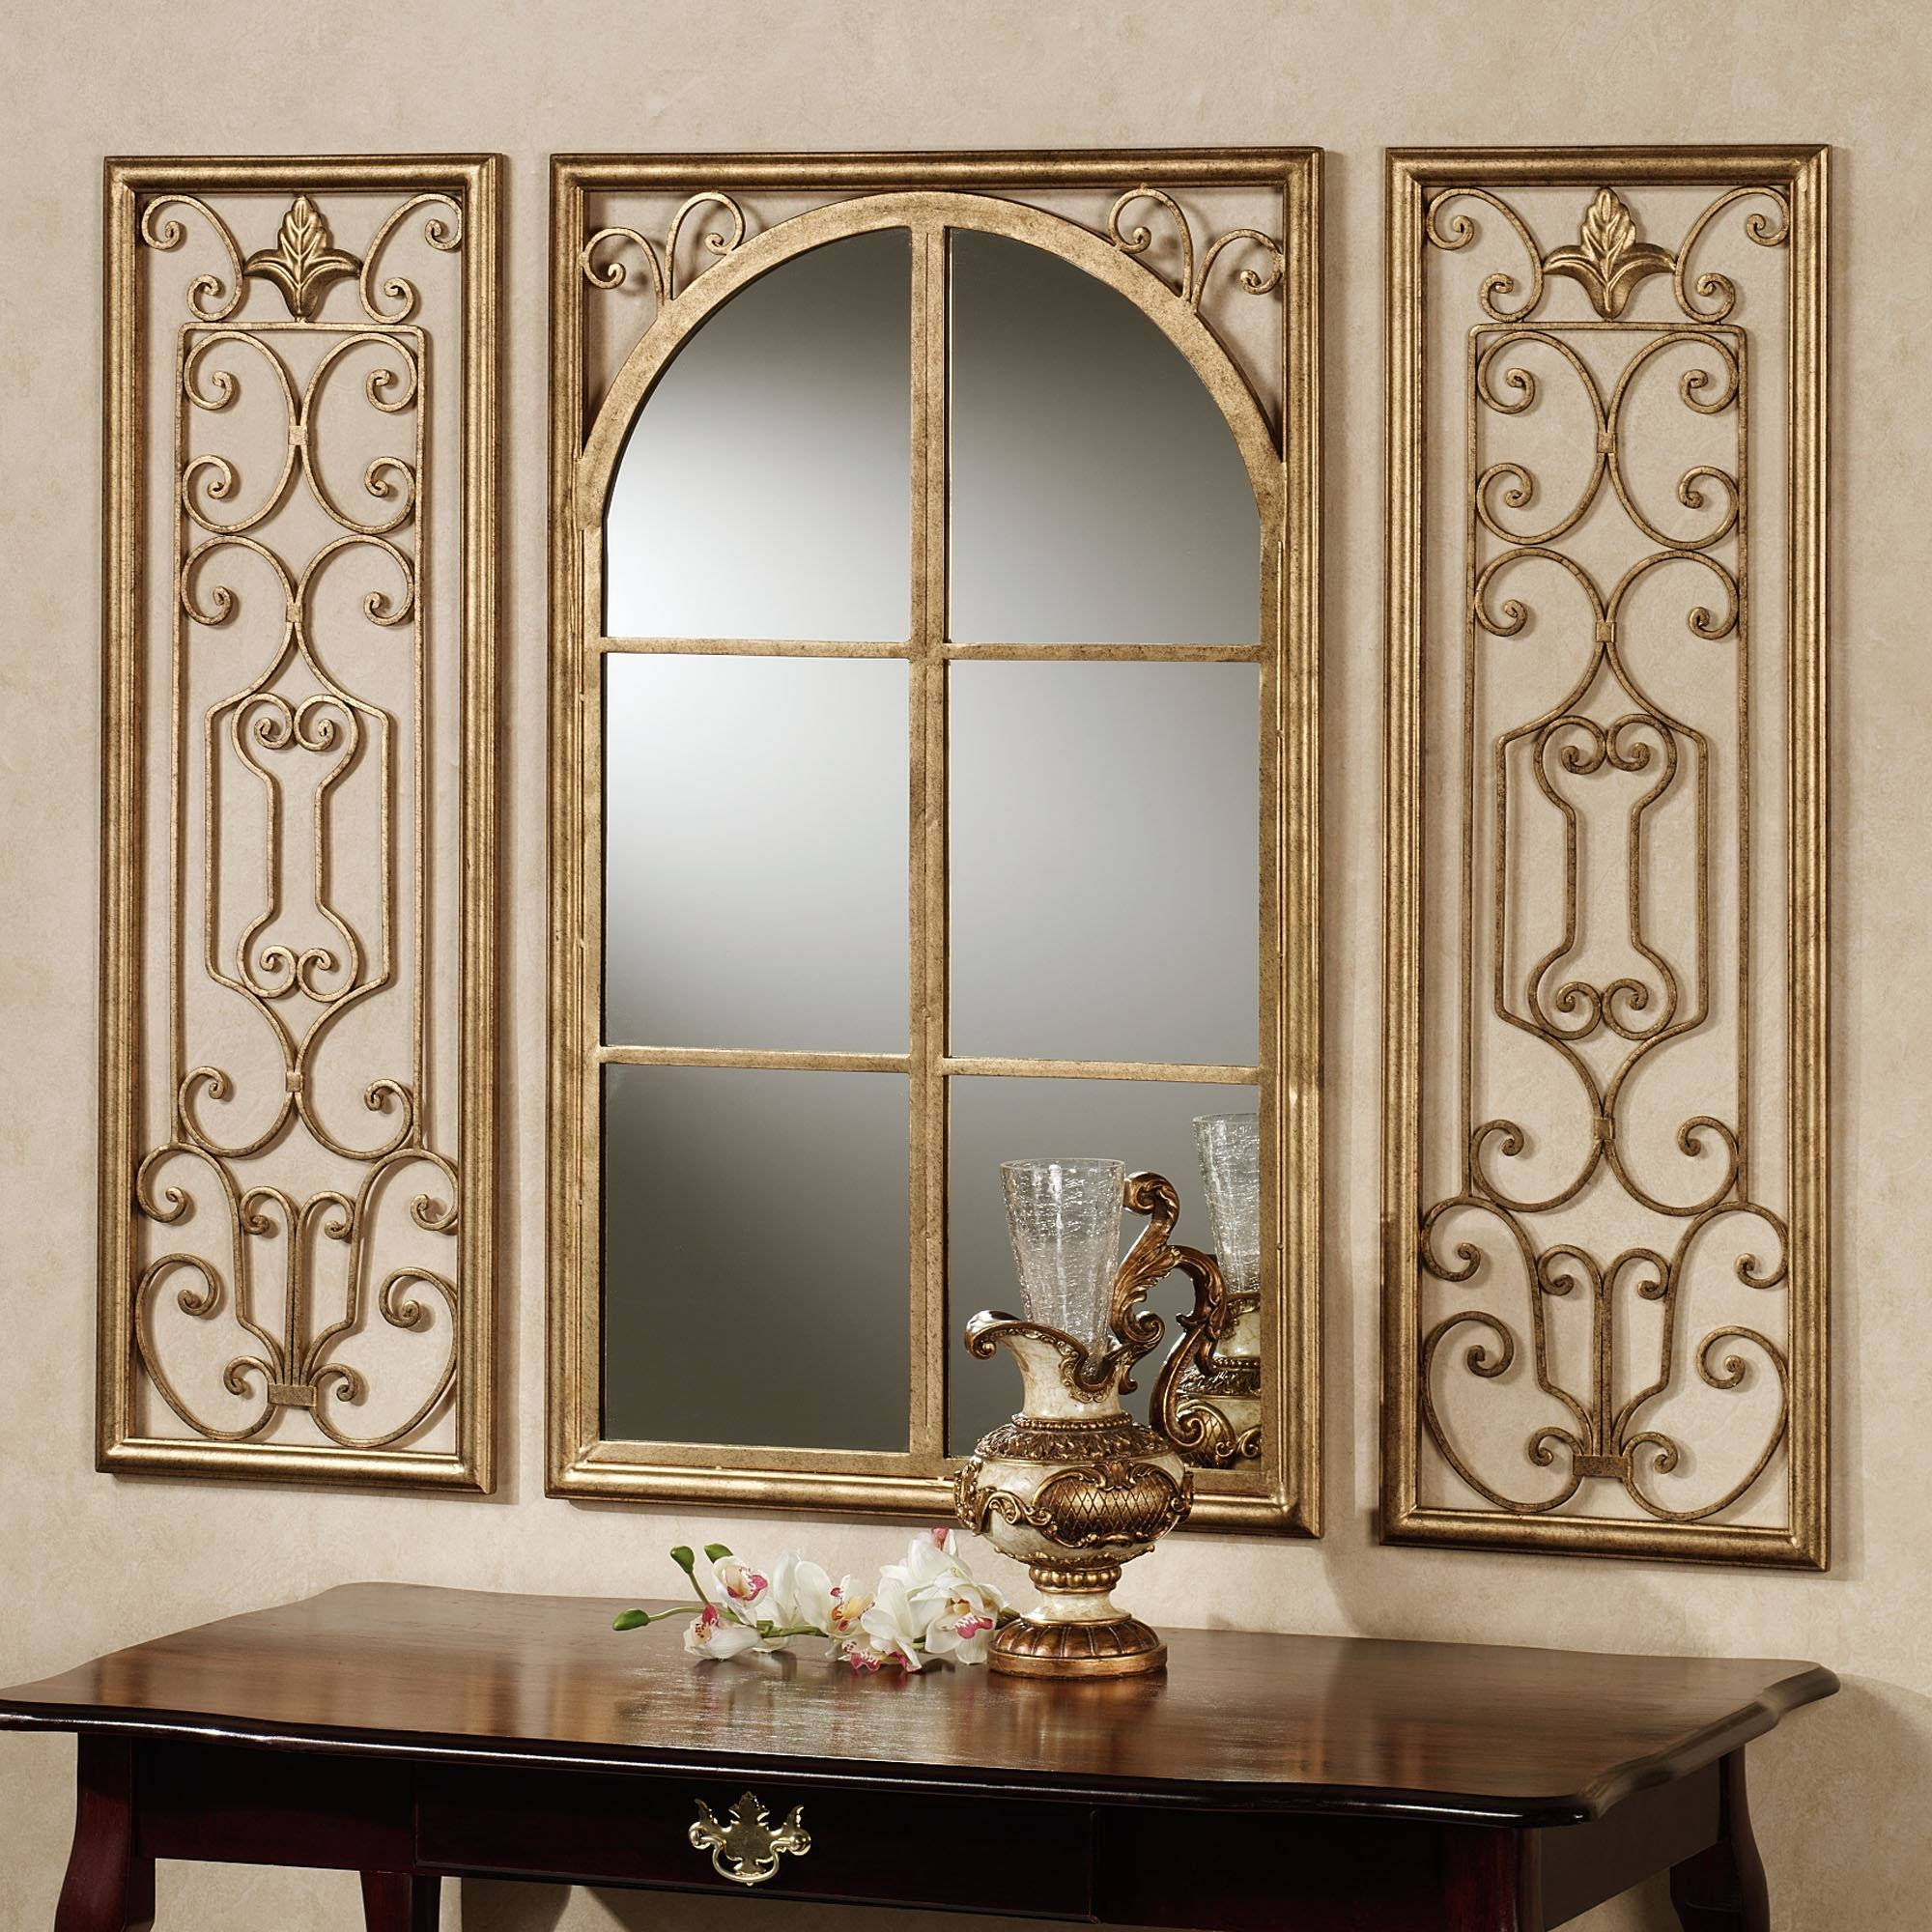 Large Decorative Mirrors With Specific Design To Beautify | The within Large Ornate Wall Mirrors (Image 6 of 15)